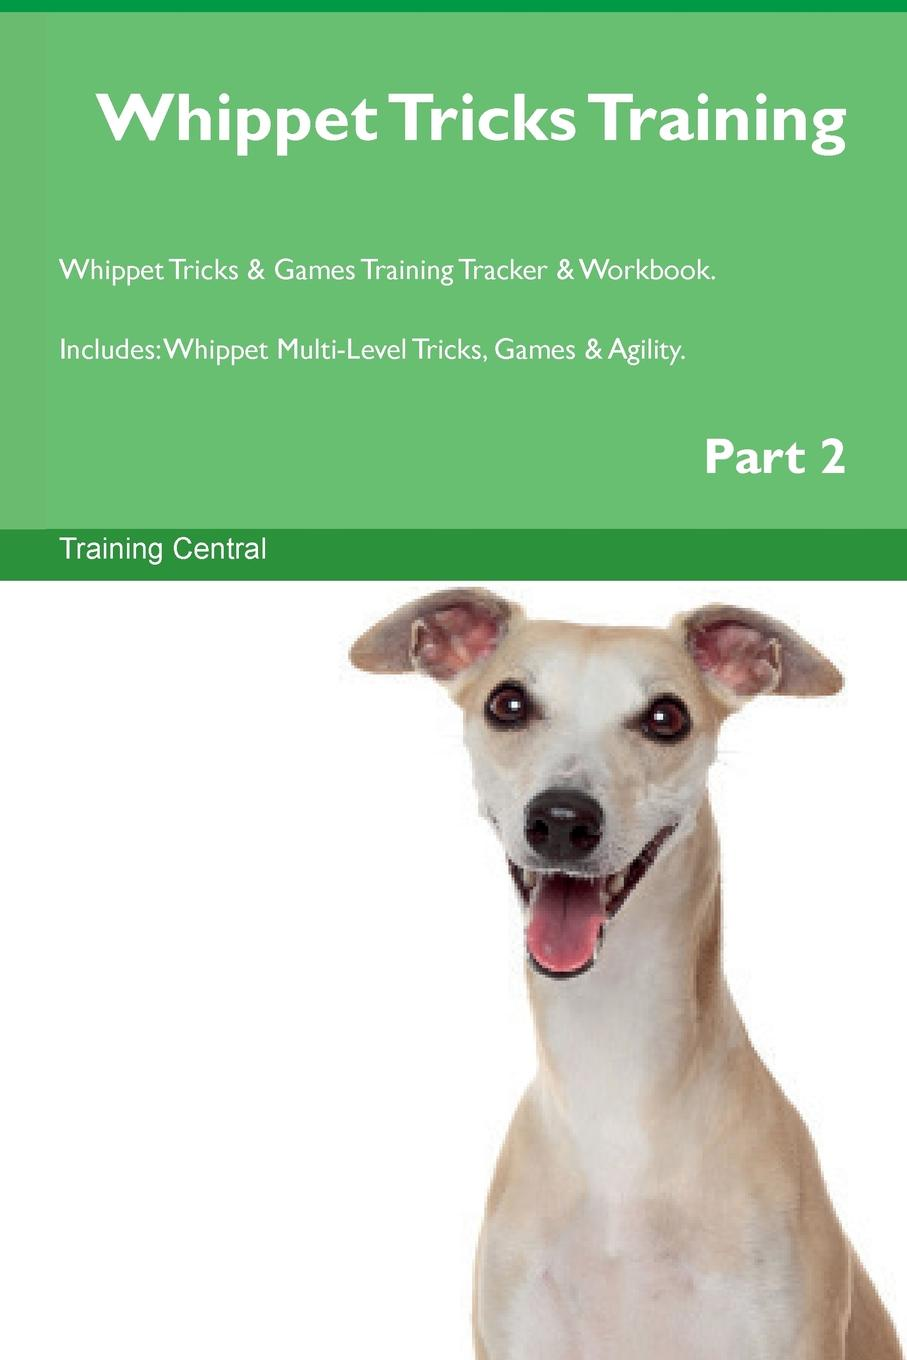 Training Central Whippet Tricks Training Whippet Tricks . Games Training Tracker . Workbook. Includes. Whippet Multi-Level Tricks, Games . Agility. Part 2 this book loves you